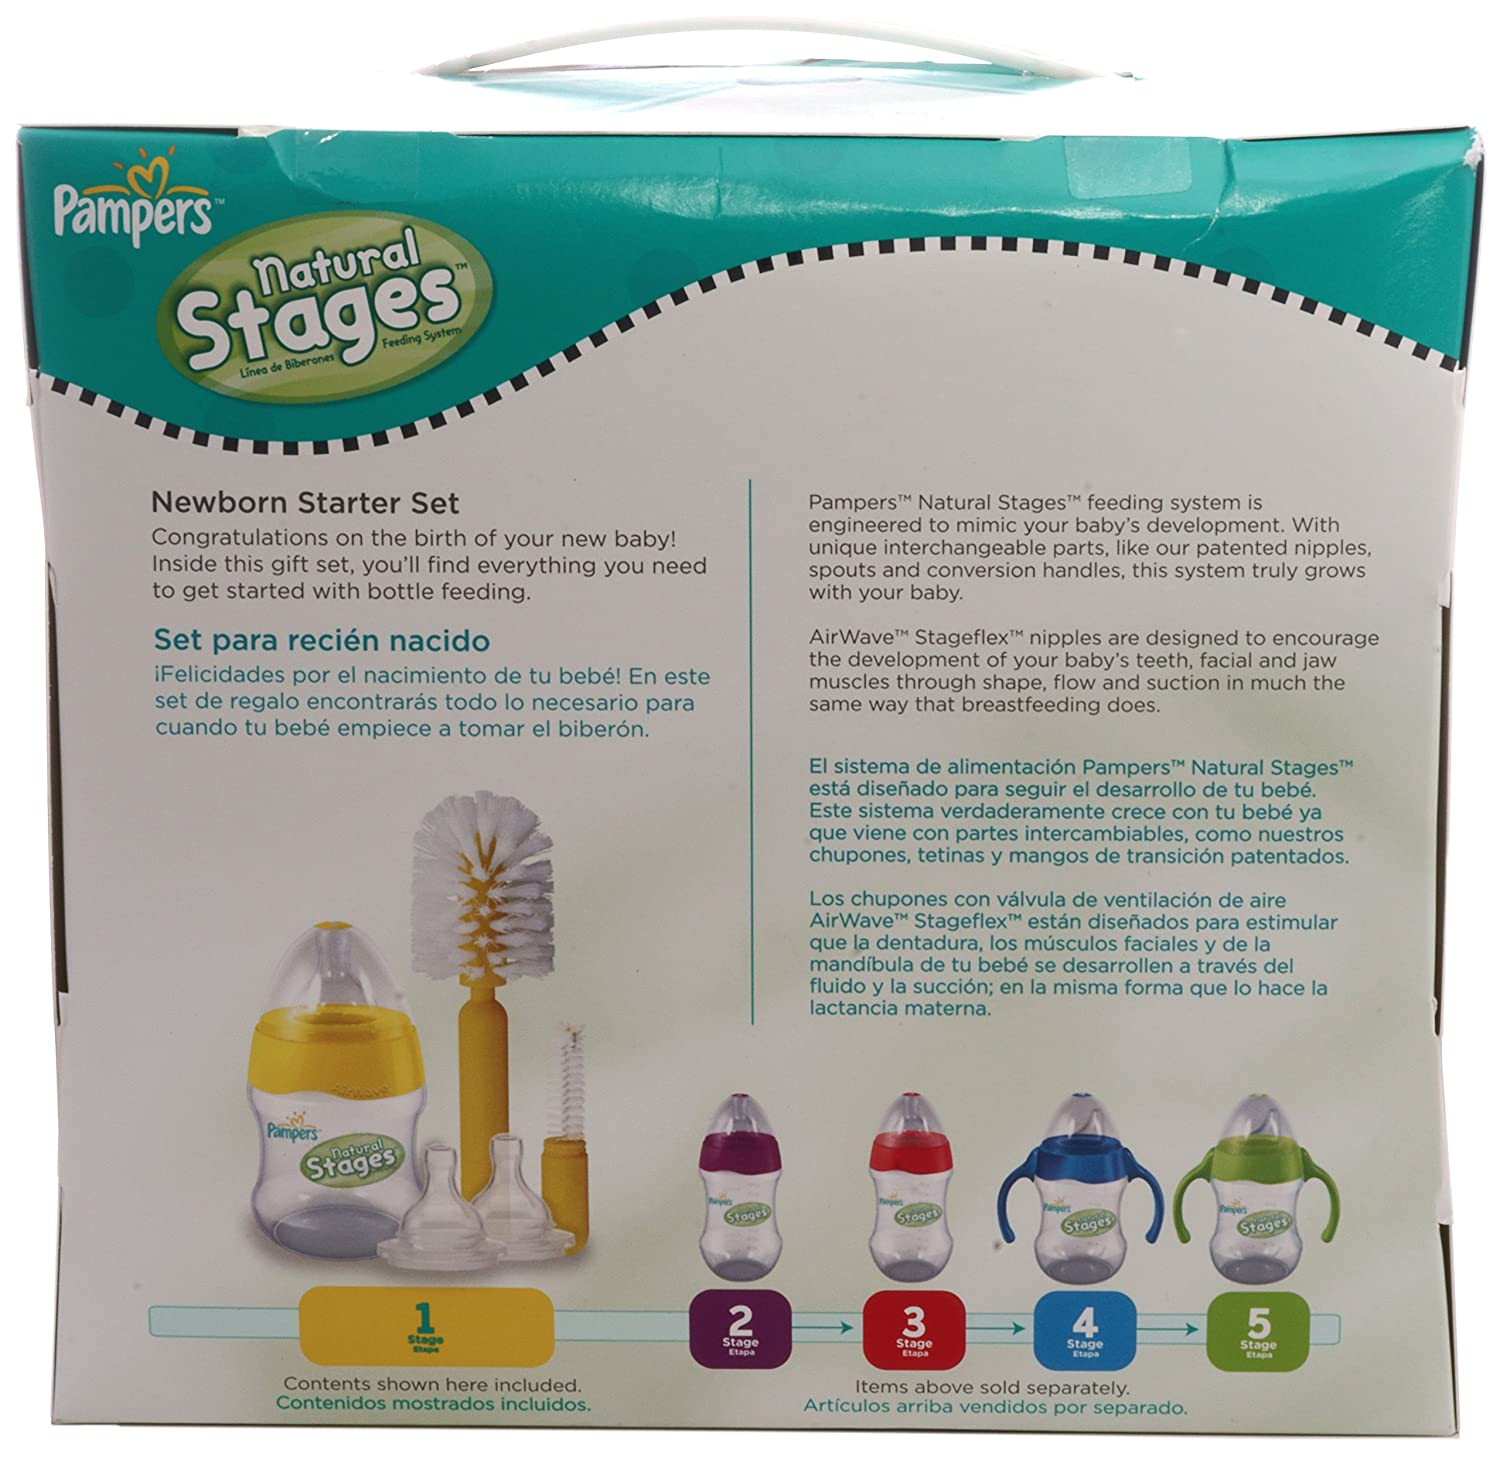 Amazon.com : Pampers Newborn Starter Set : Baby Bottle Supplies : Baby